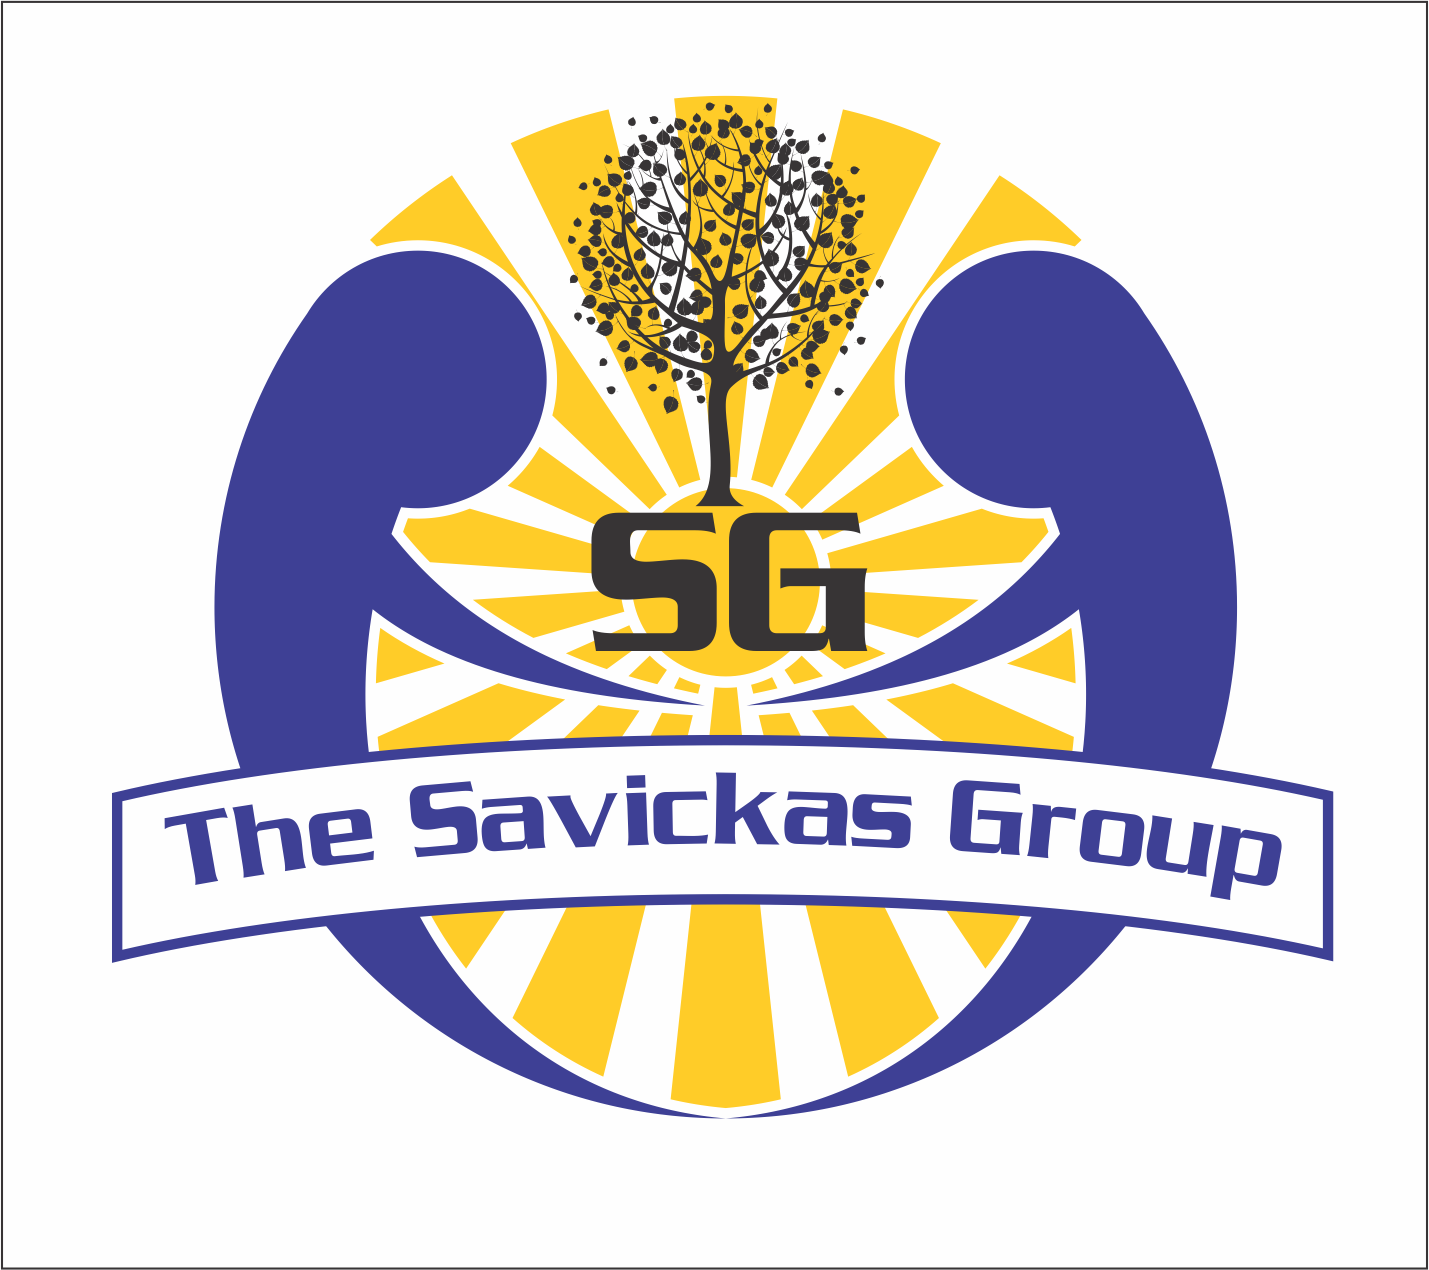 Logo Design by Mufti Kurniawan - Entry No. 15 in the Logo Design Contest Logo Design Needed for Exciting New Company The Savickas Group.